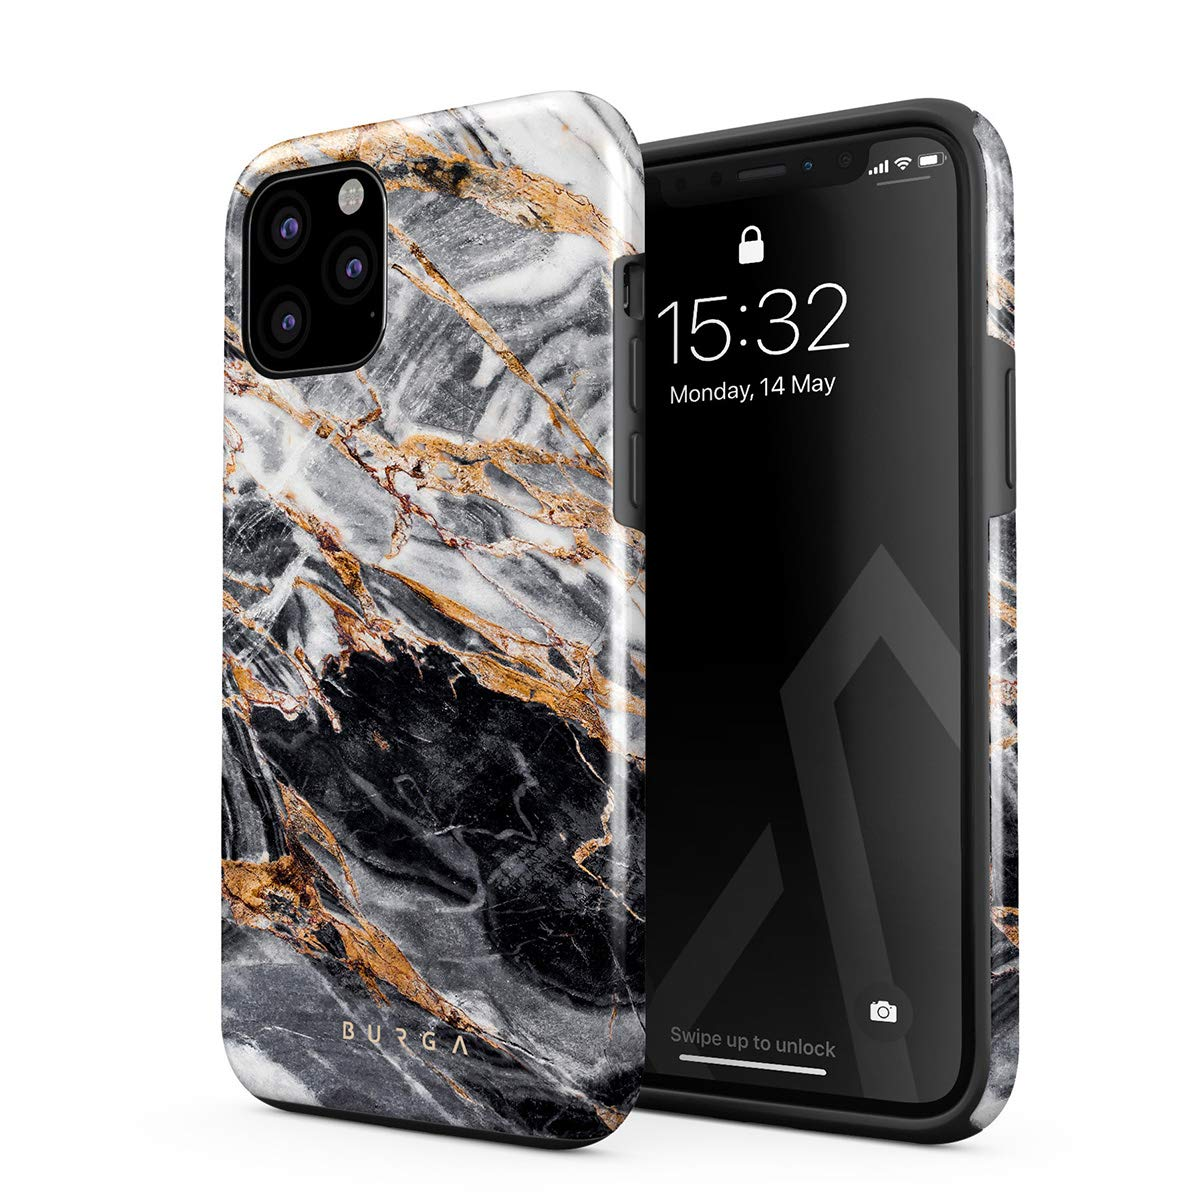 BURGA Phone Case Compatible with iPhone 11 PRO MAX - Black and Gold Marble Stone Cute Case for Girls Heavy Duty Shockproof Dual Layer Hard Shell + Silicone Protective Cover